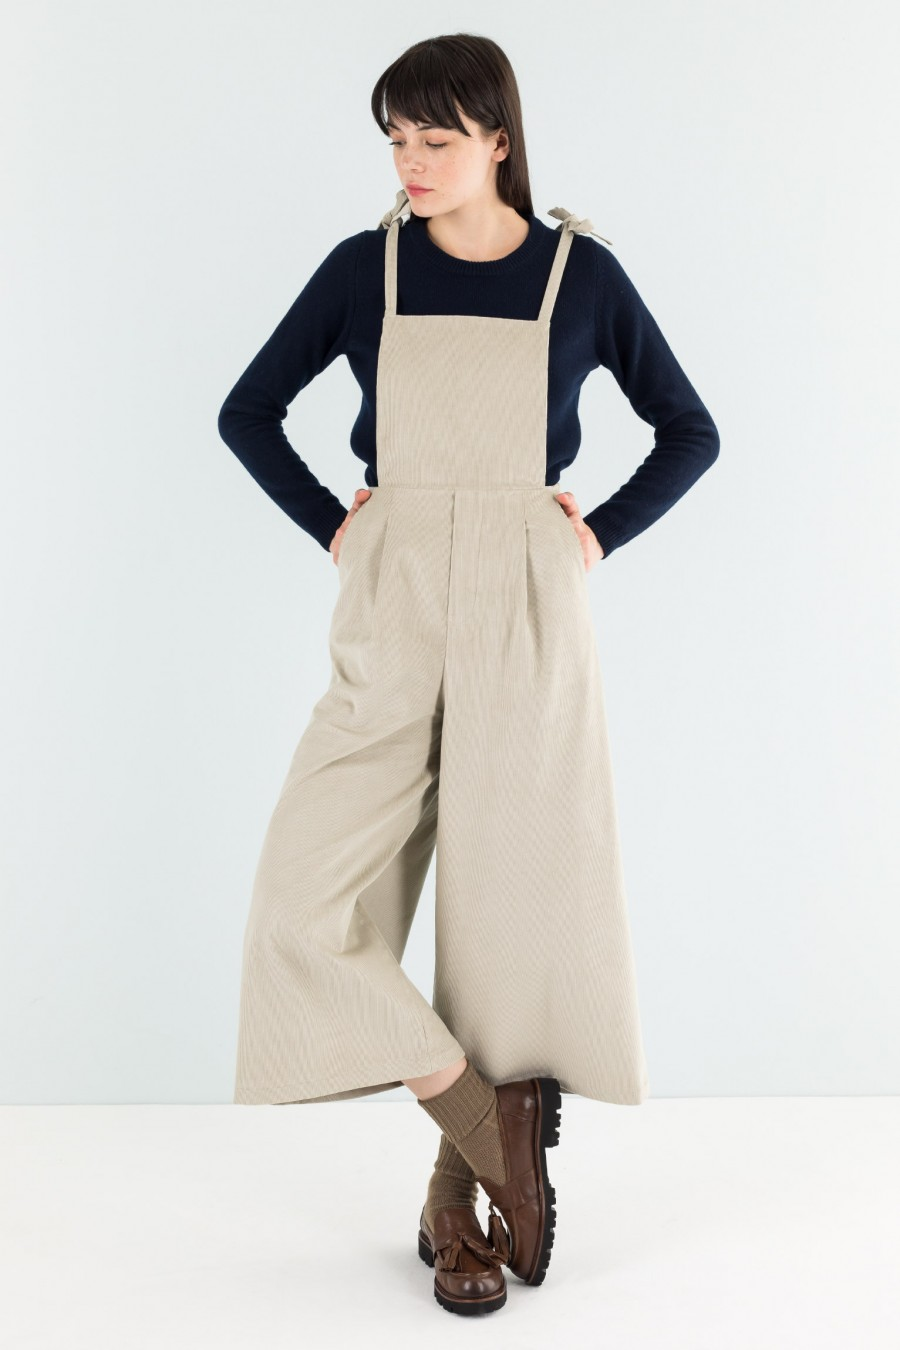 Beige overalls with thin straps